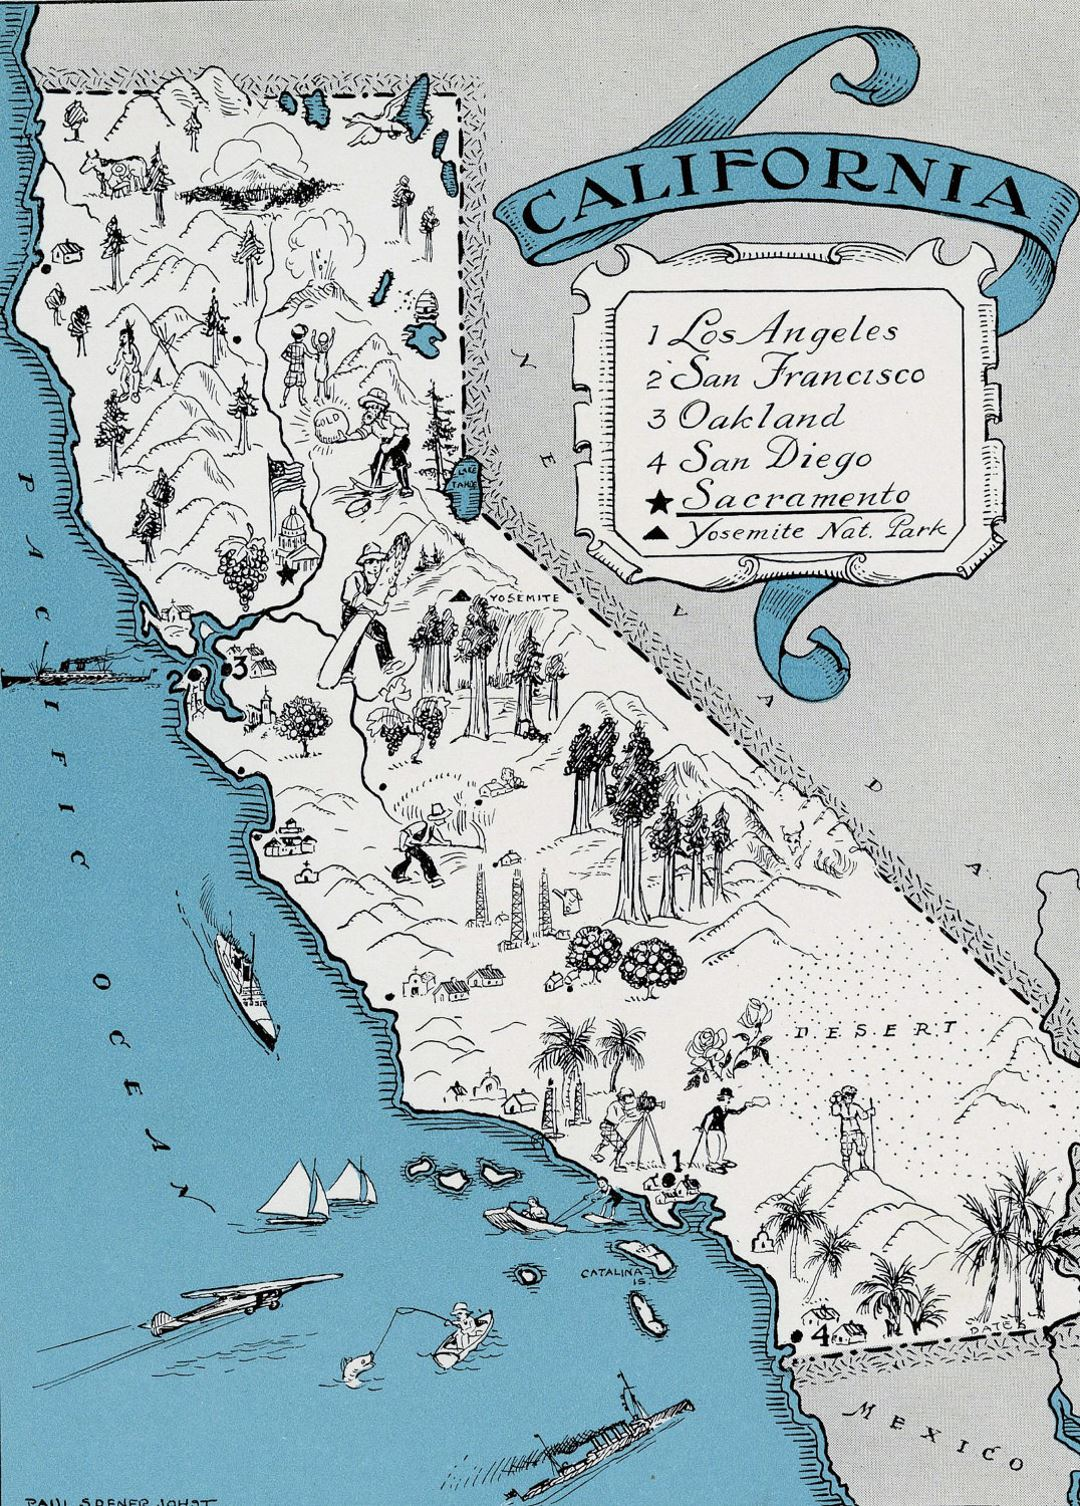 Detailed tourist illustrated map of California state